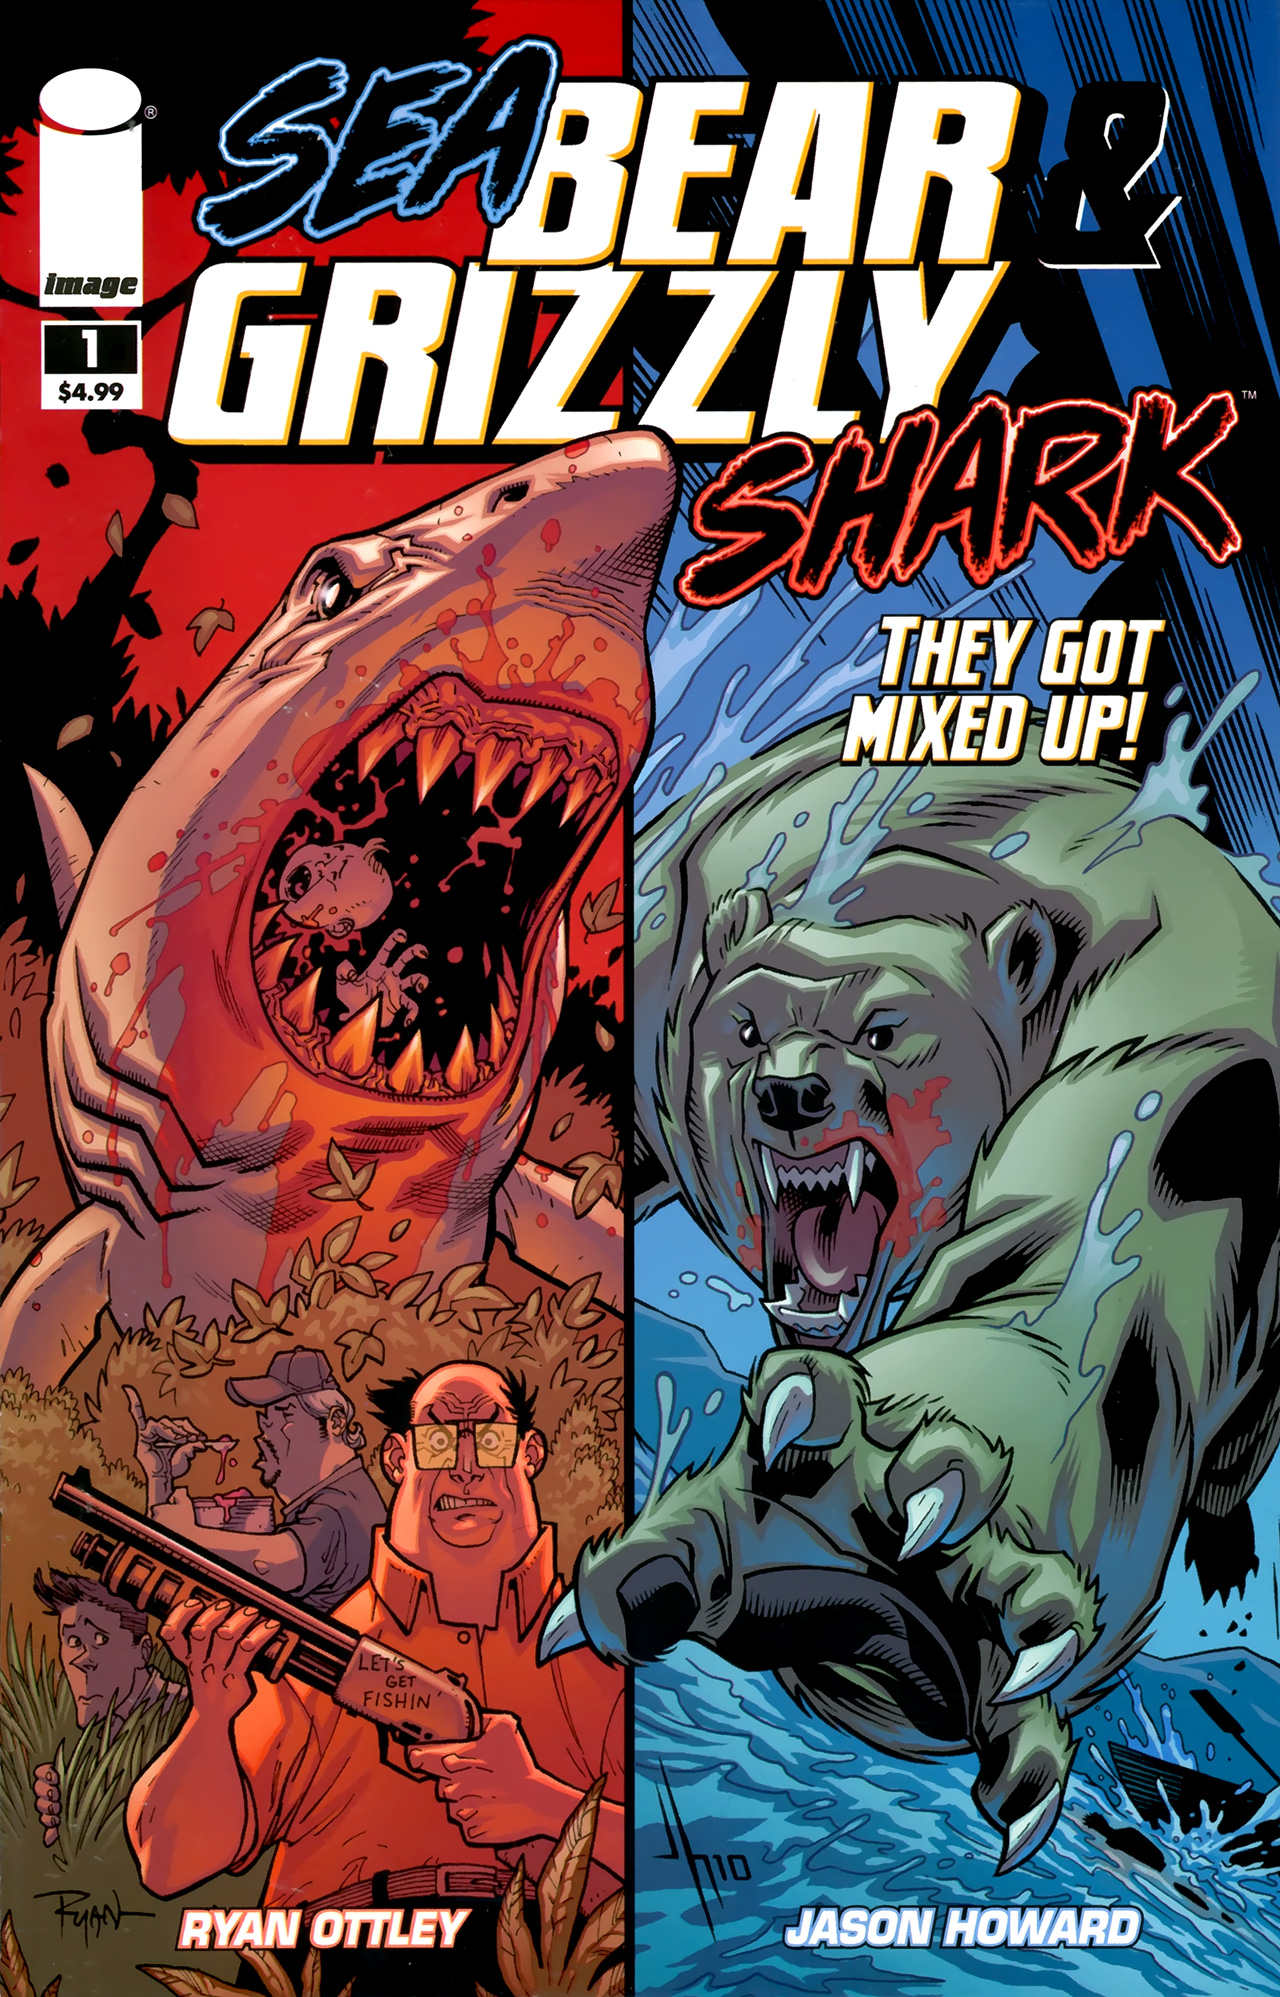 Read online Sea Bear & Grizzly Shark comic -  Issue # Full - 1